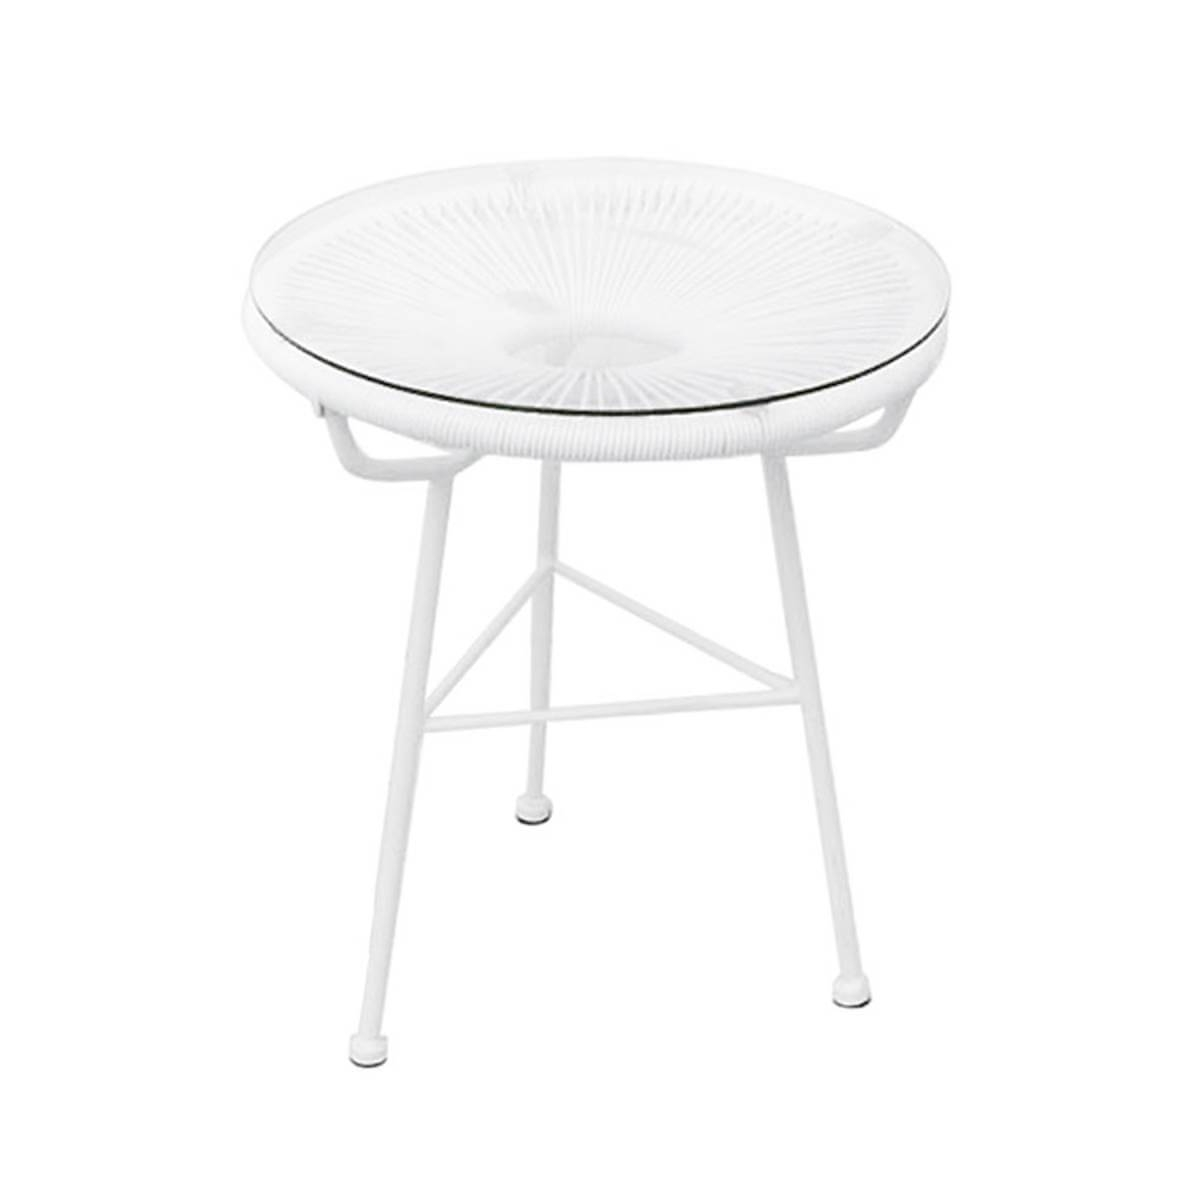 Round Retro Coffee Table: The Best White Retro Coffee Tables